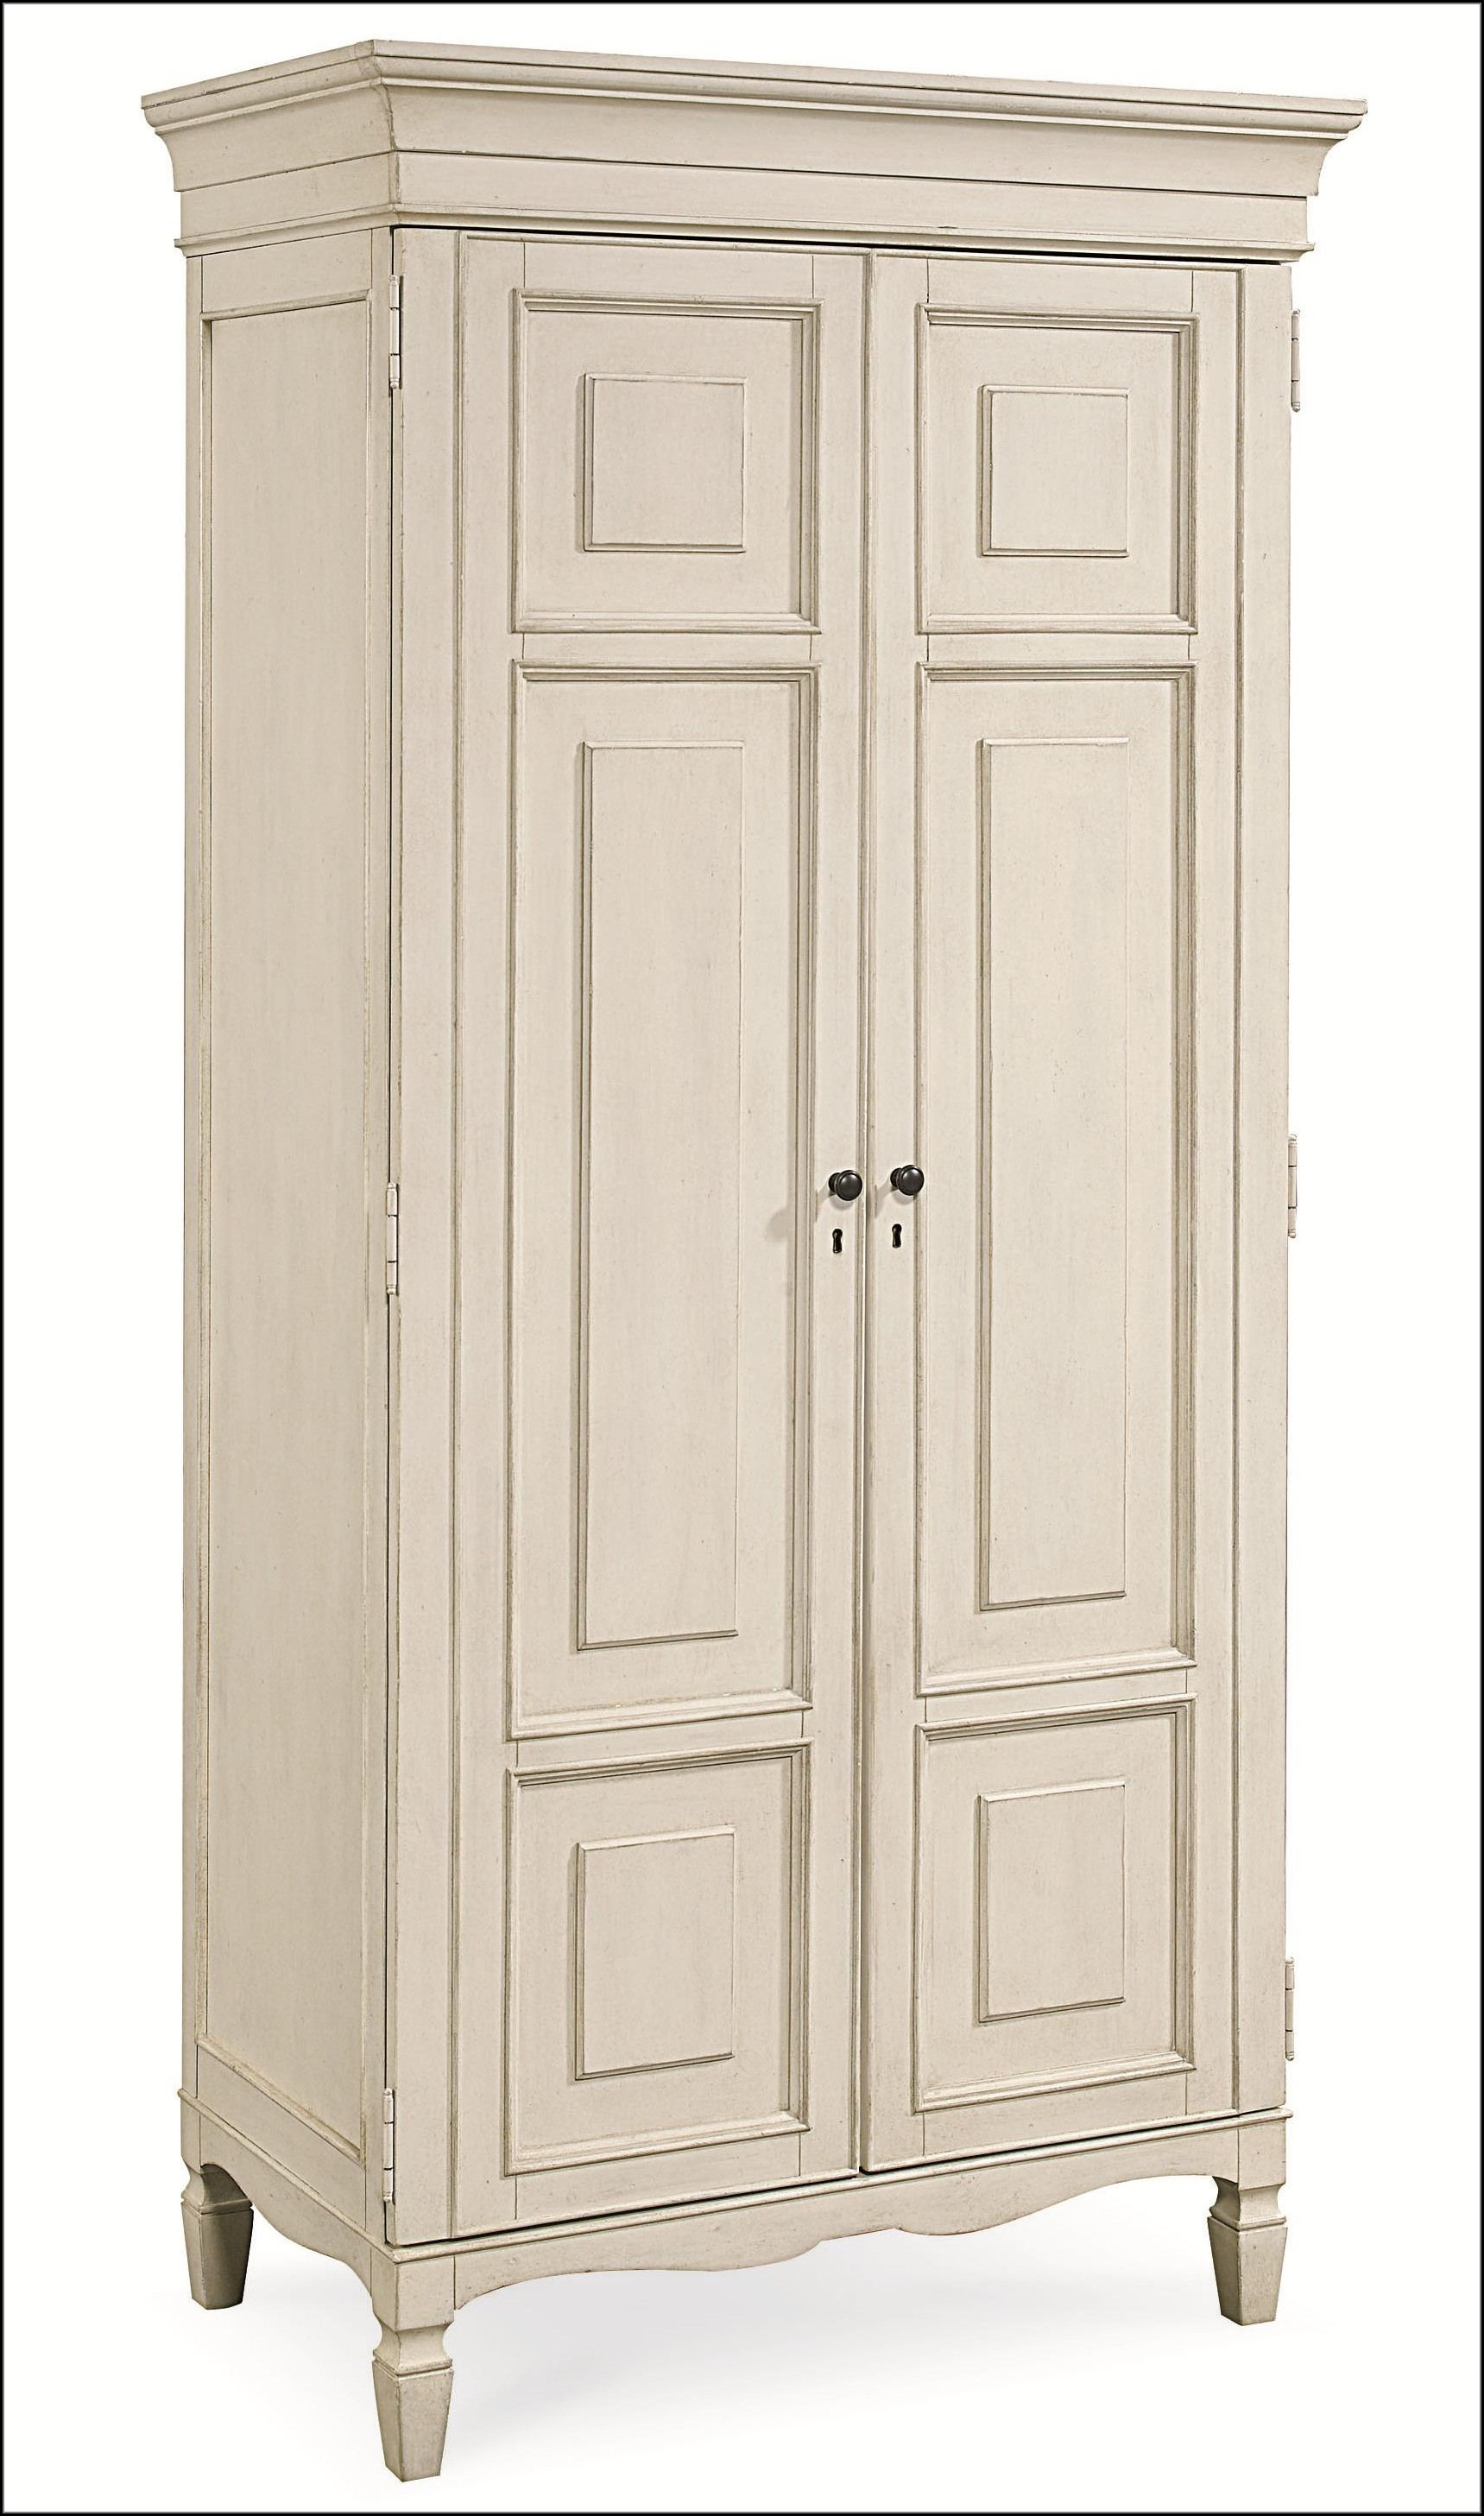 Tall Storage Cabinets With Doors